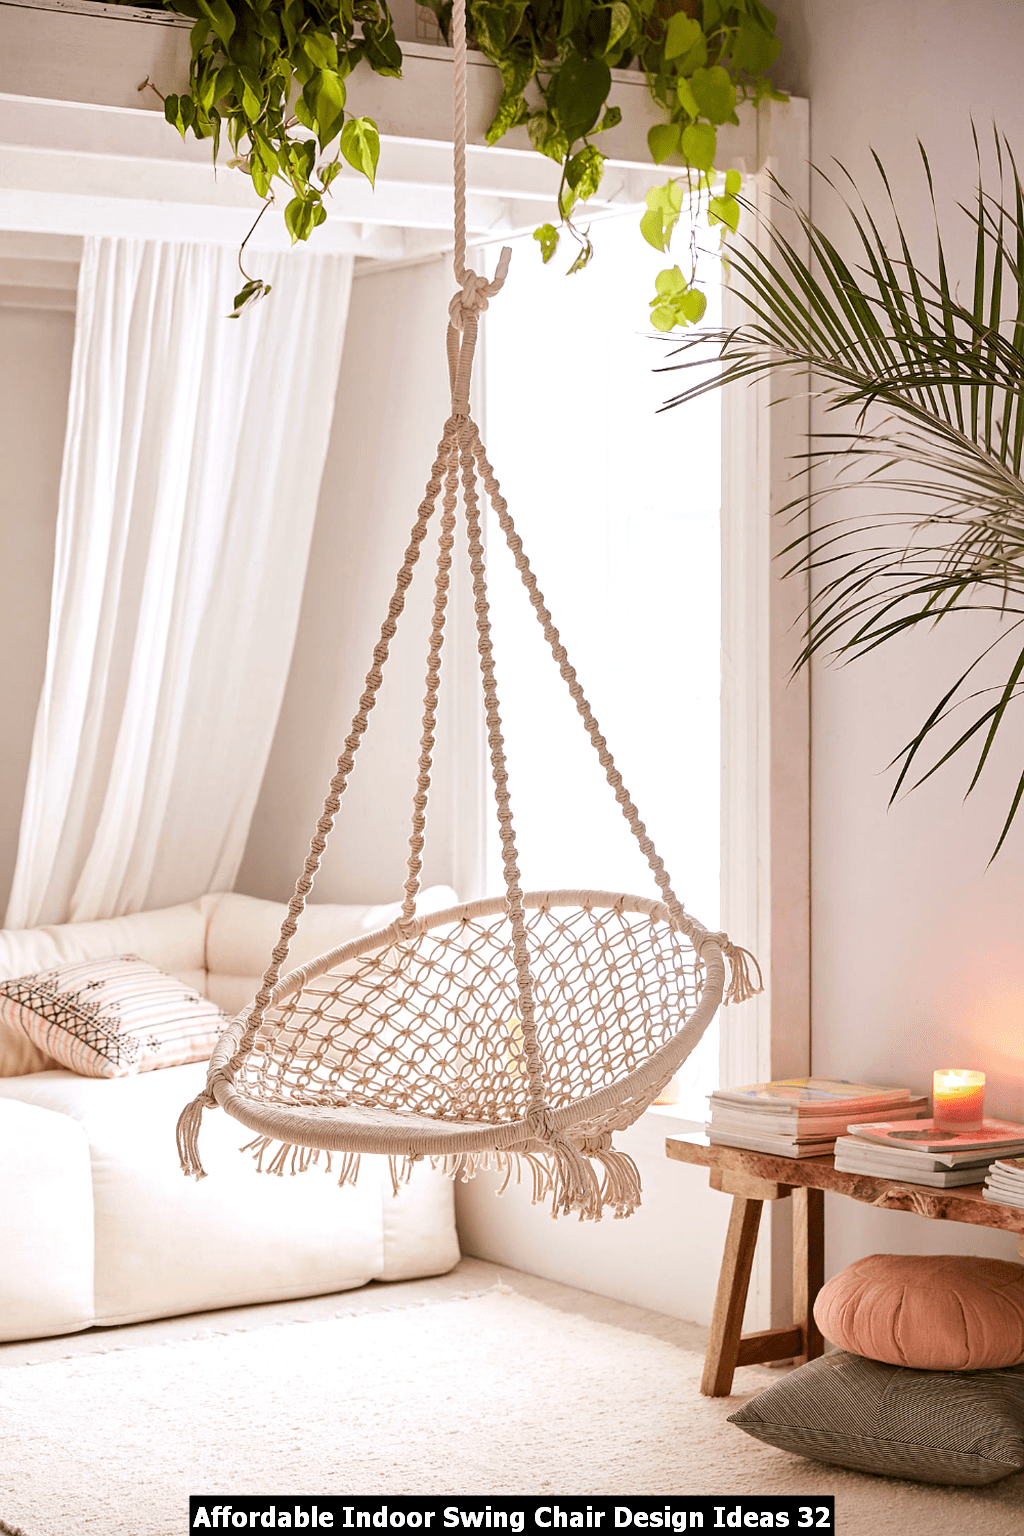 Affordable Indoor Swing Chair Design Ideas 32